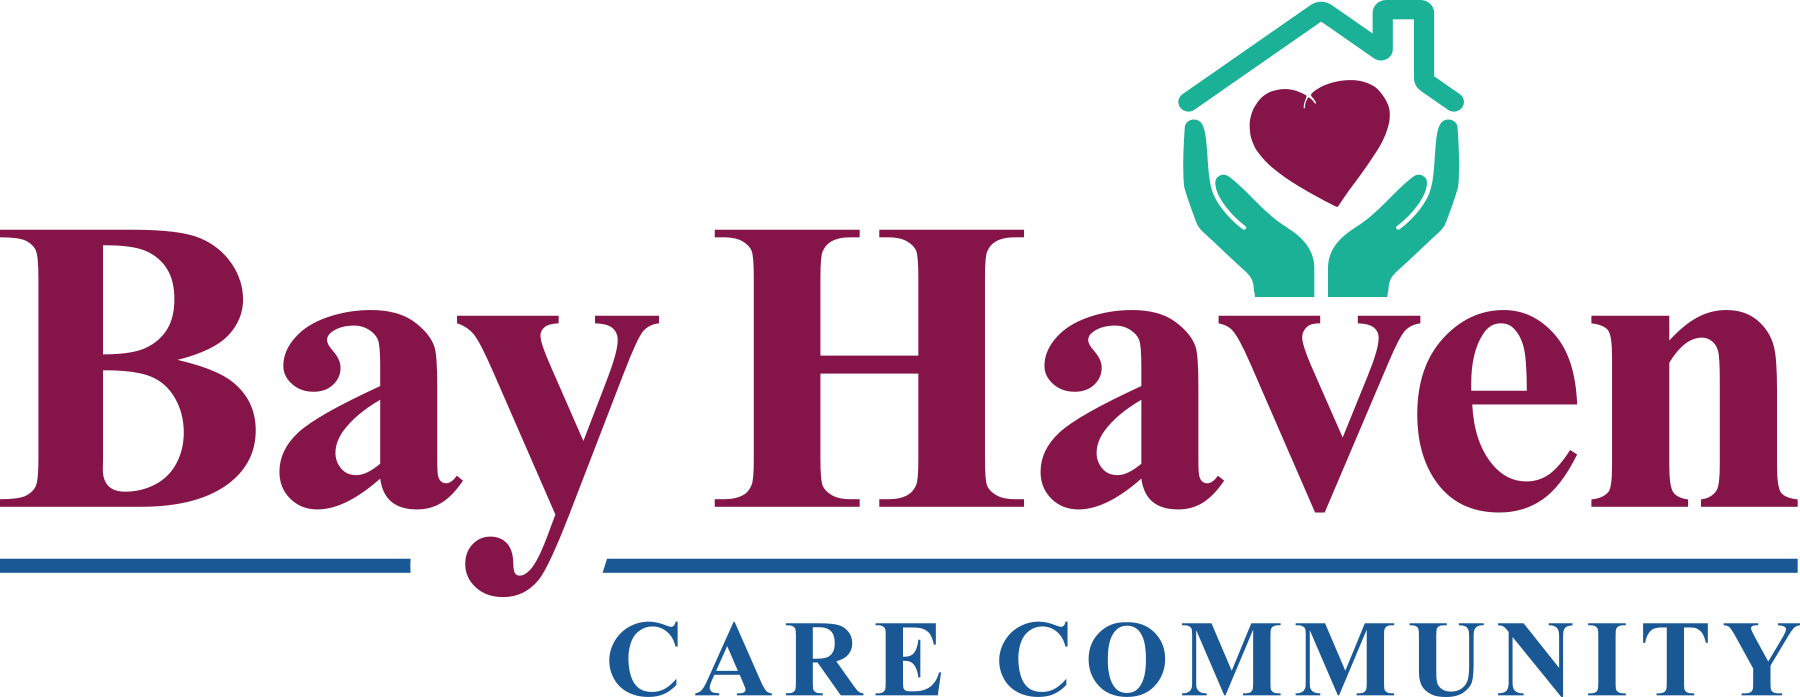 Bay Haven Care Community